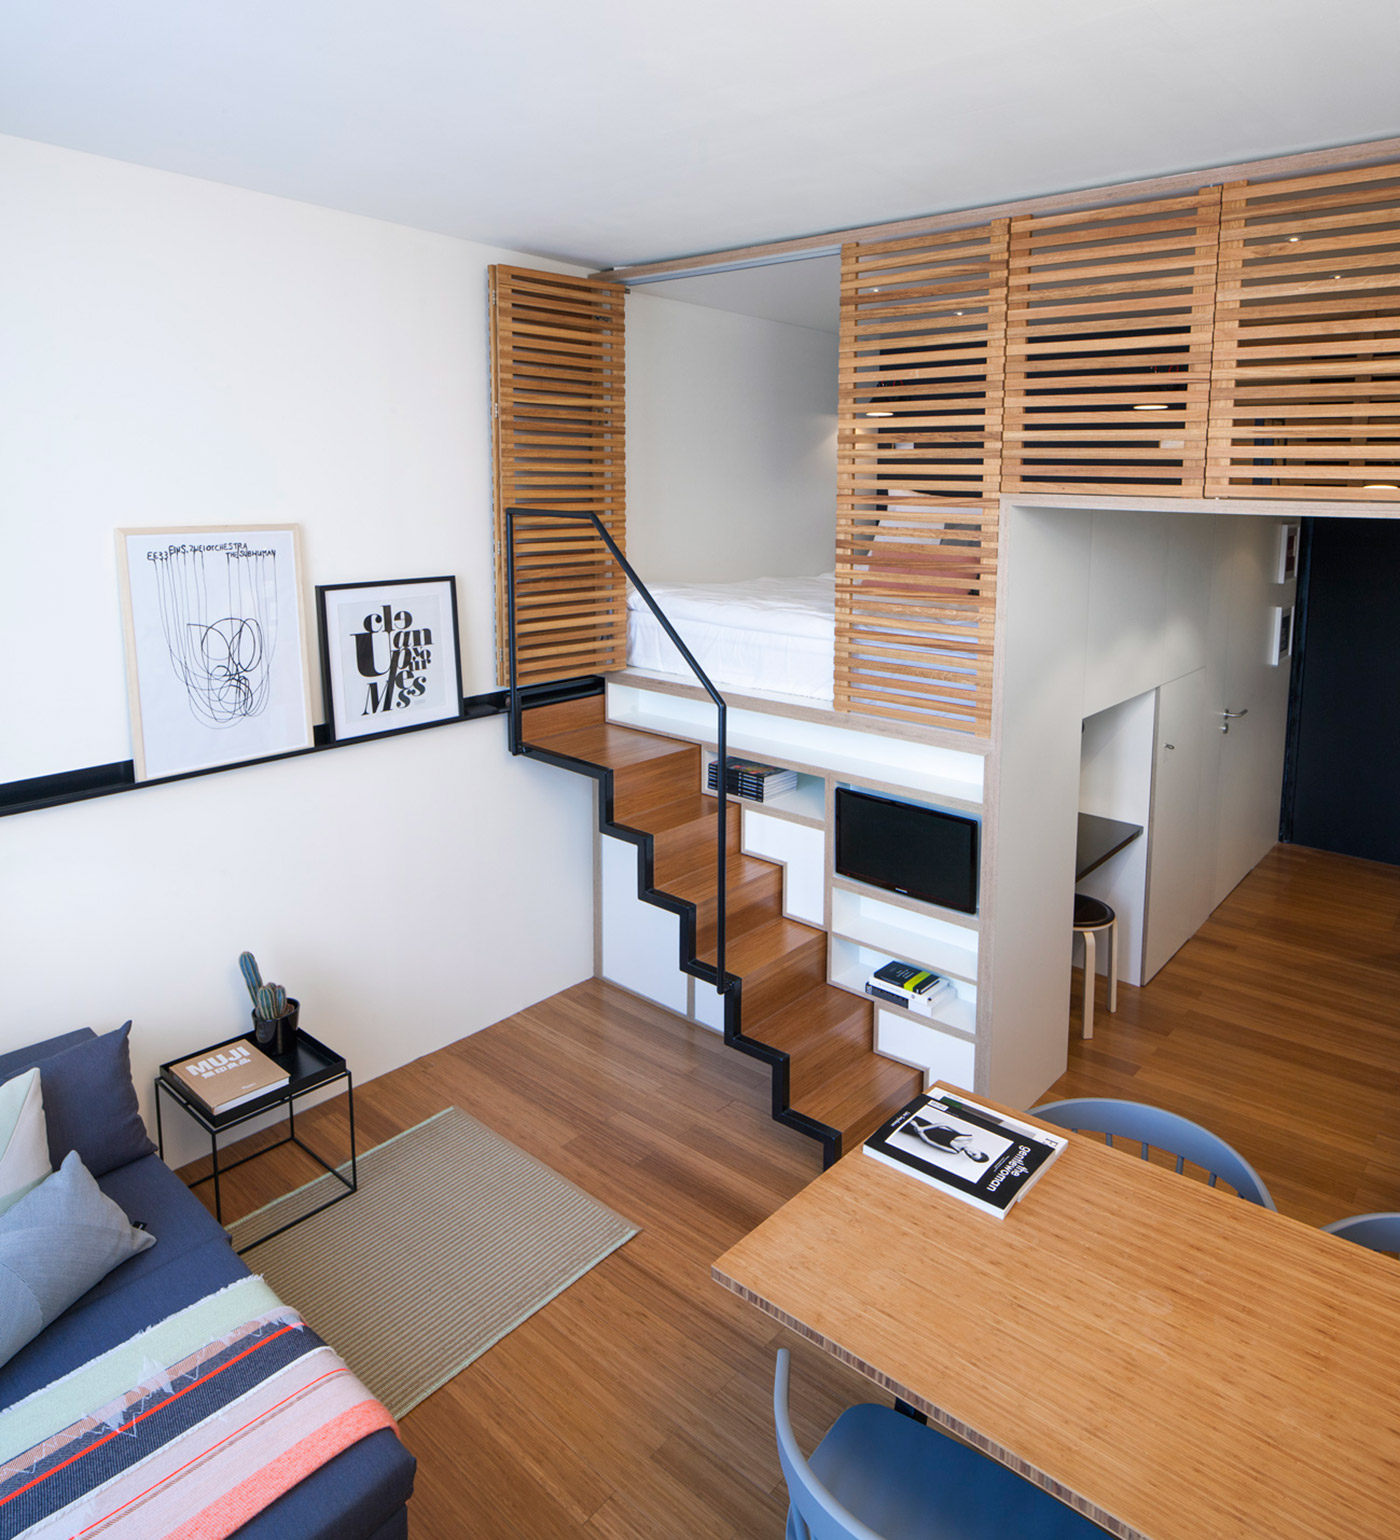 Loft Apartment: 4 Awesome Small Studio Apartments With Lofted Beds